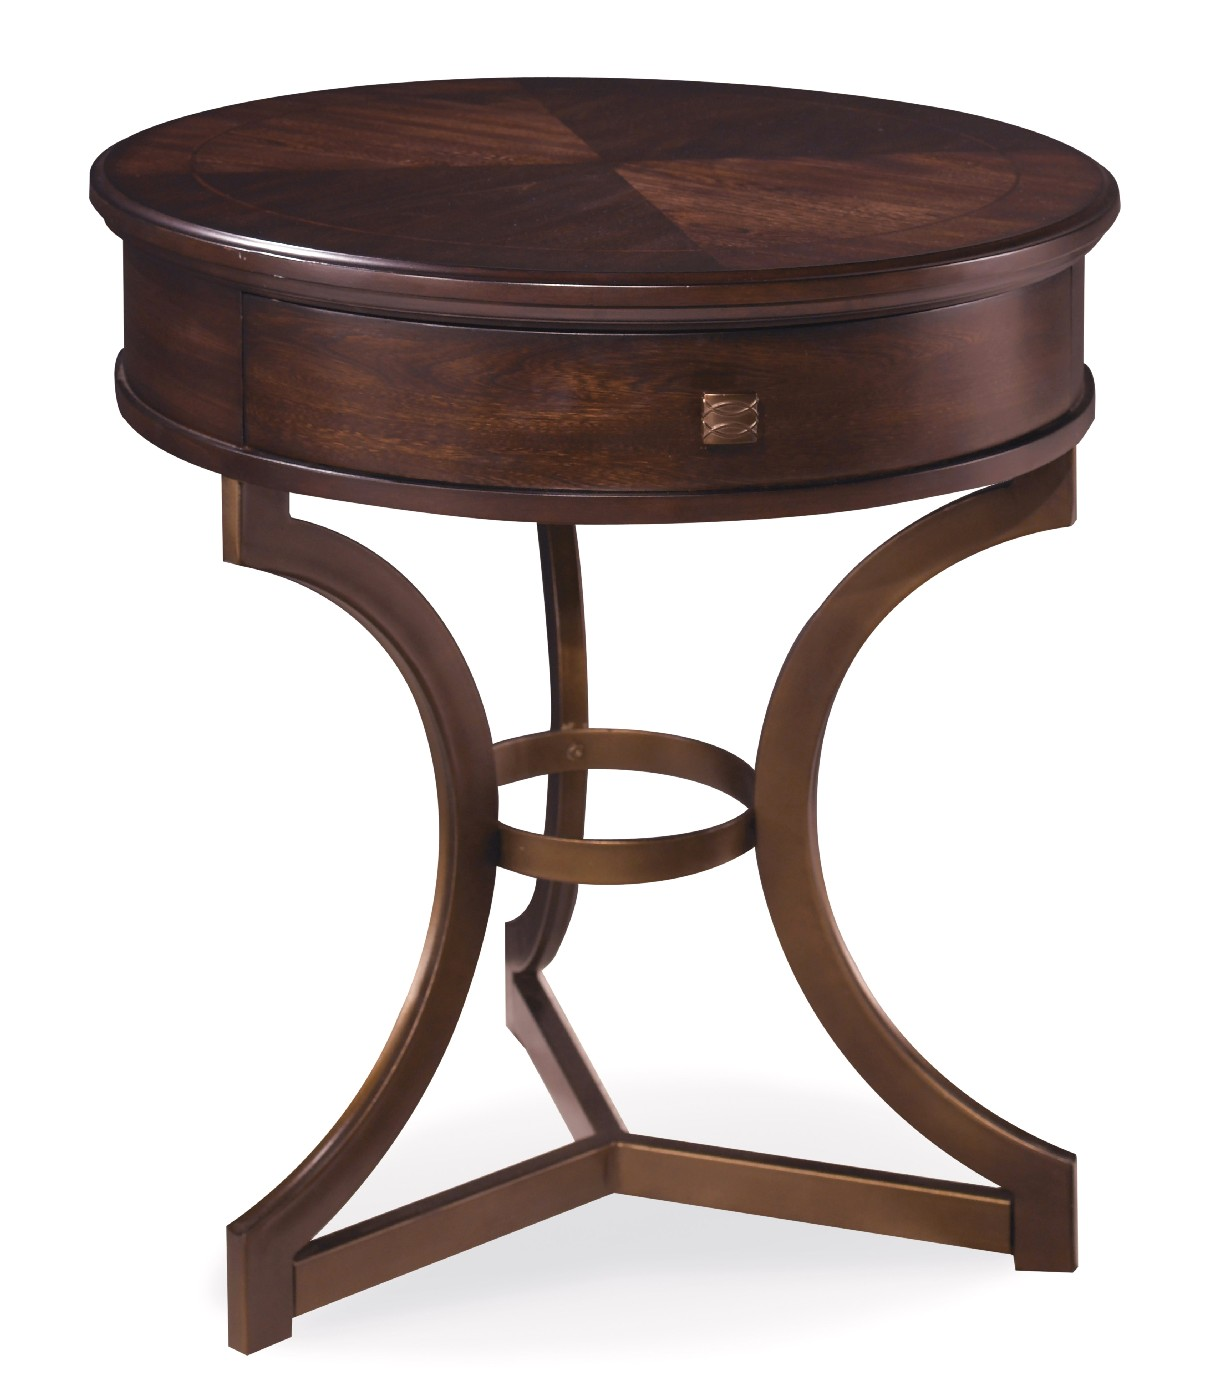 Chair Side Table With Storage Intrigue Harper Round Wood Chair Side Table Bronze Base